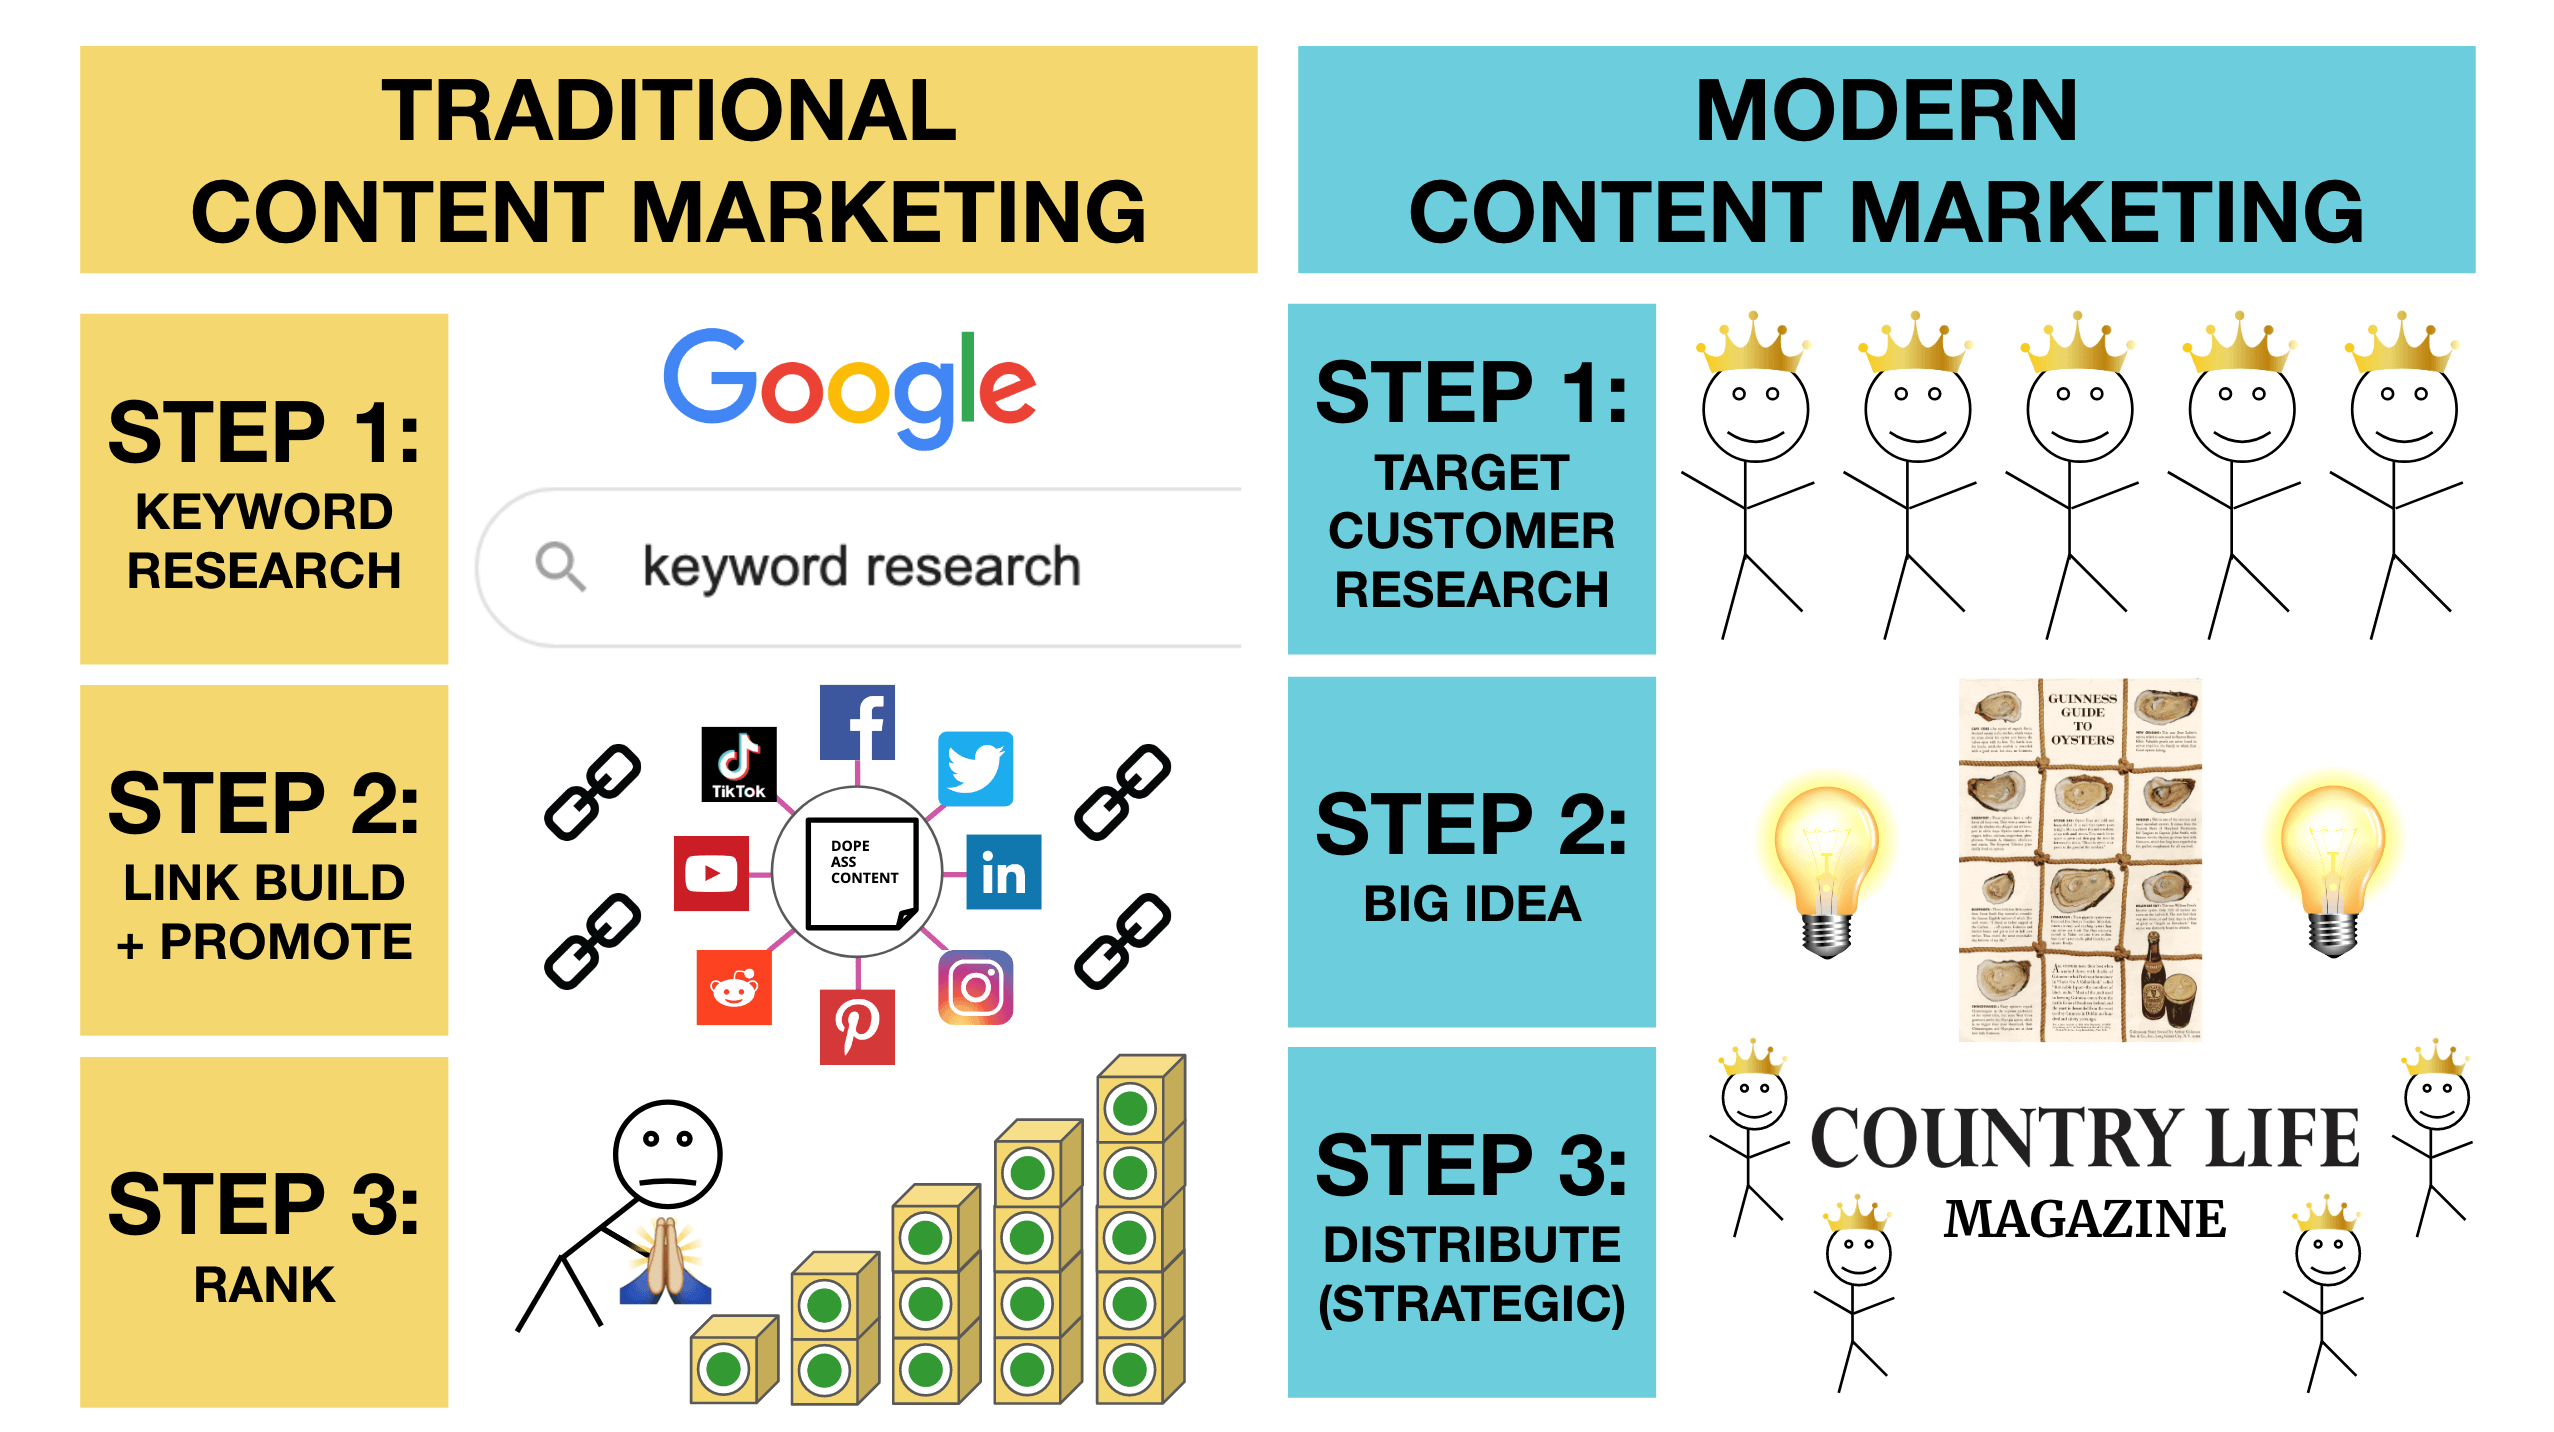 traditional vs modern content marketing image